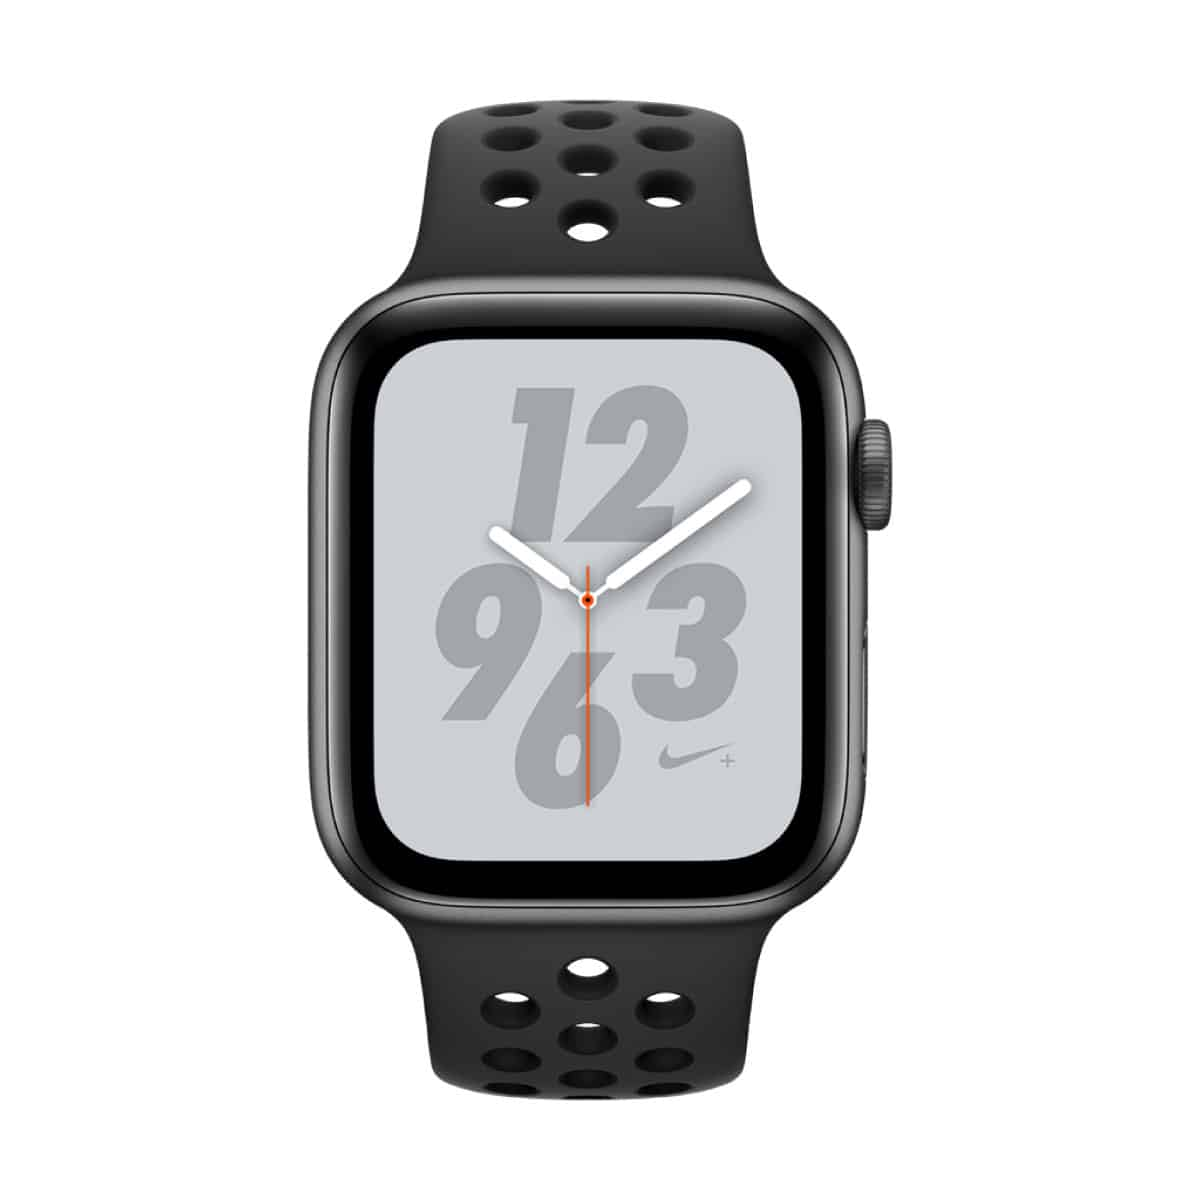 WatchSeries4-44mm-AluminumSpaceGray-NikeSportBand-AnthraciteBlack-34R-SCREEN